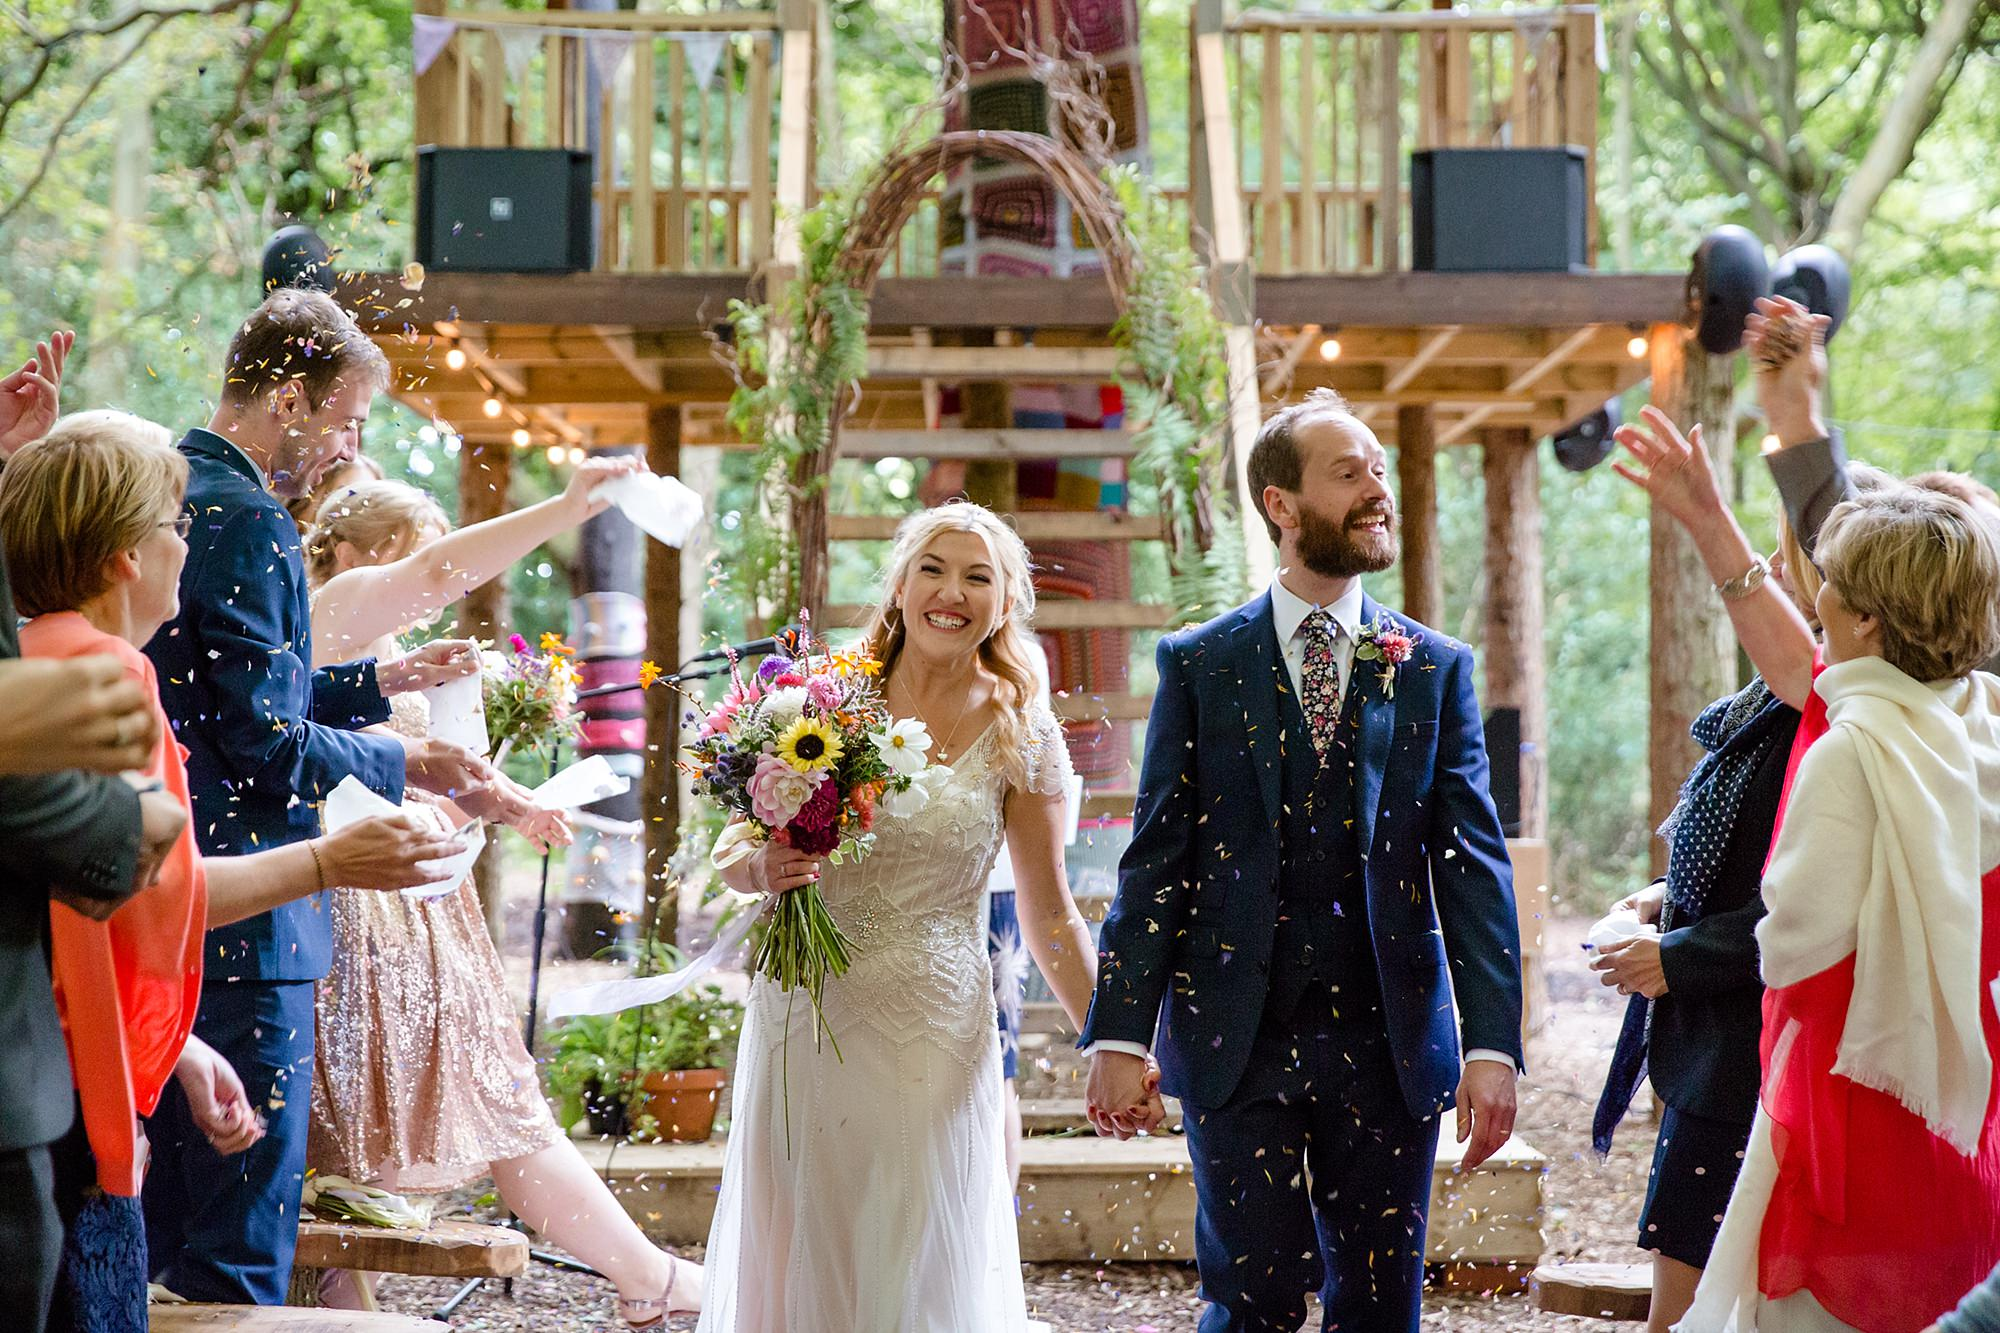 Woodland Weddings Tring bride and groom in confetti